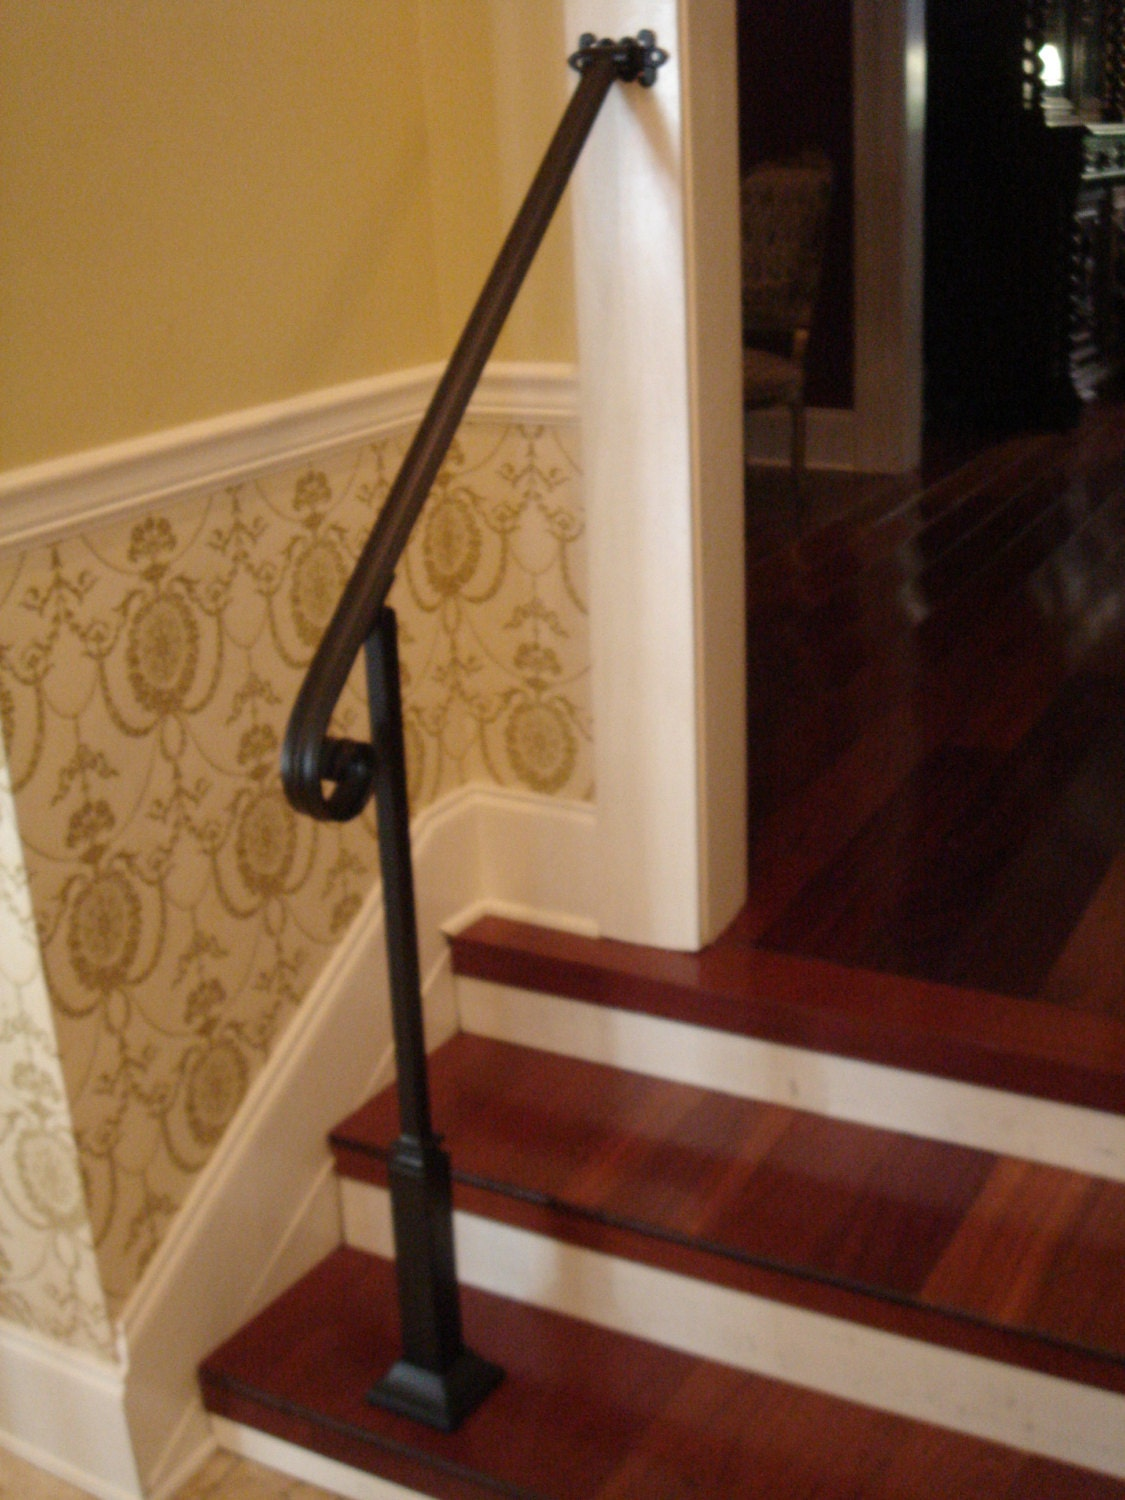 3 Ft Wrought Iron Handrail Stair Step Railing With Wall Post